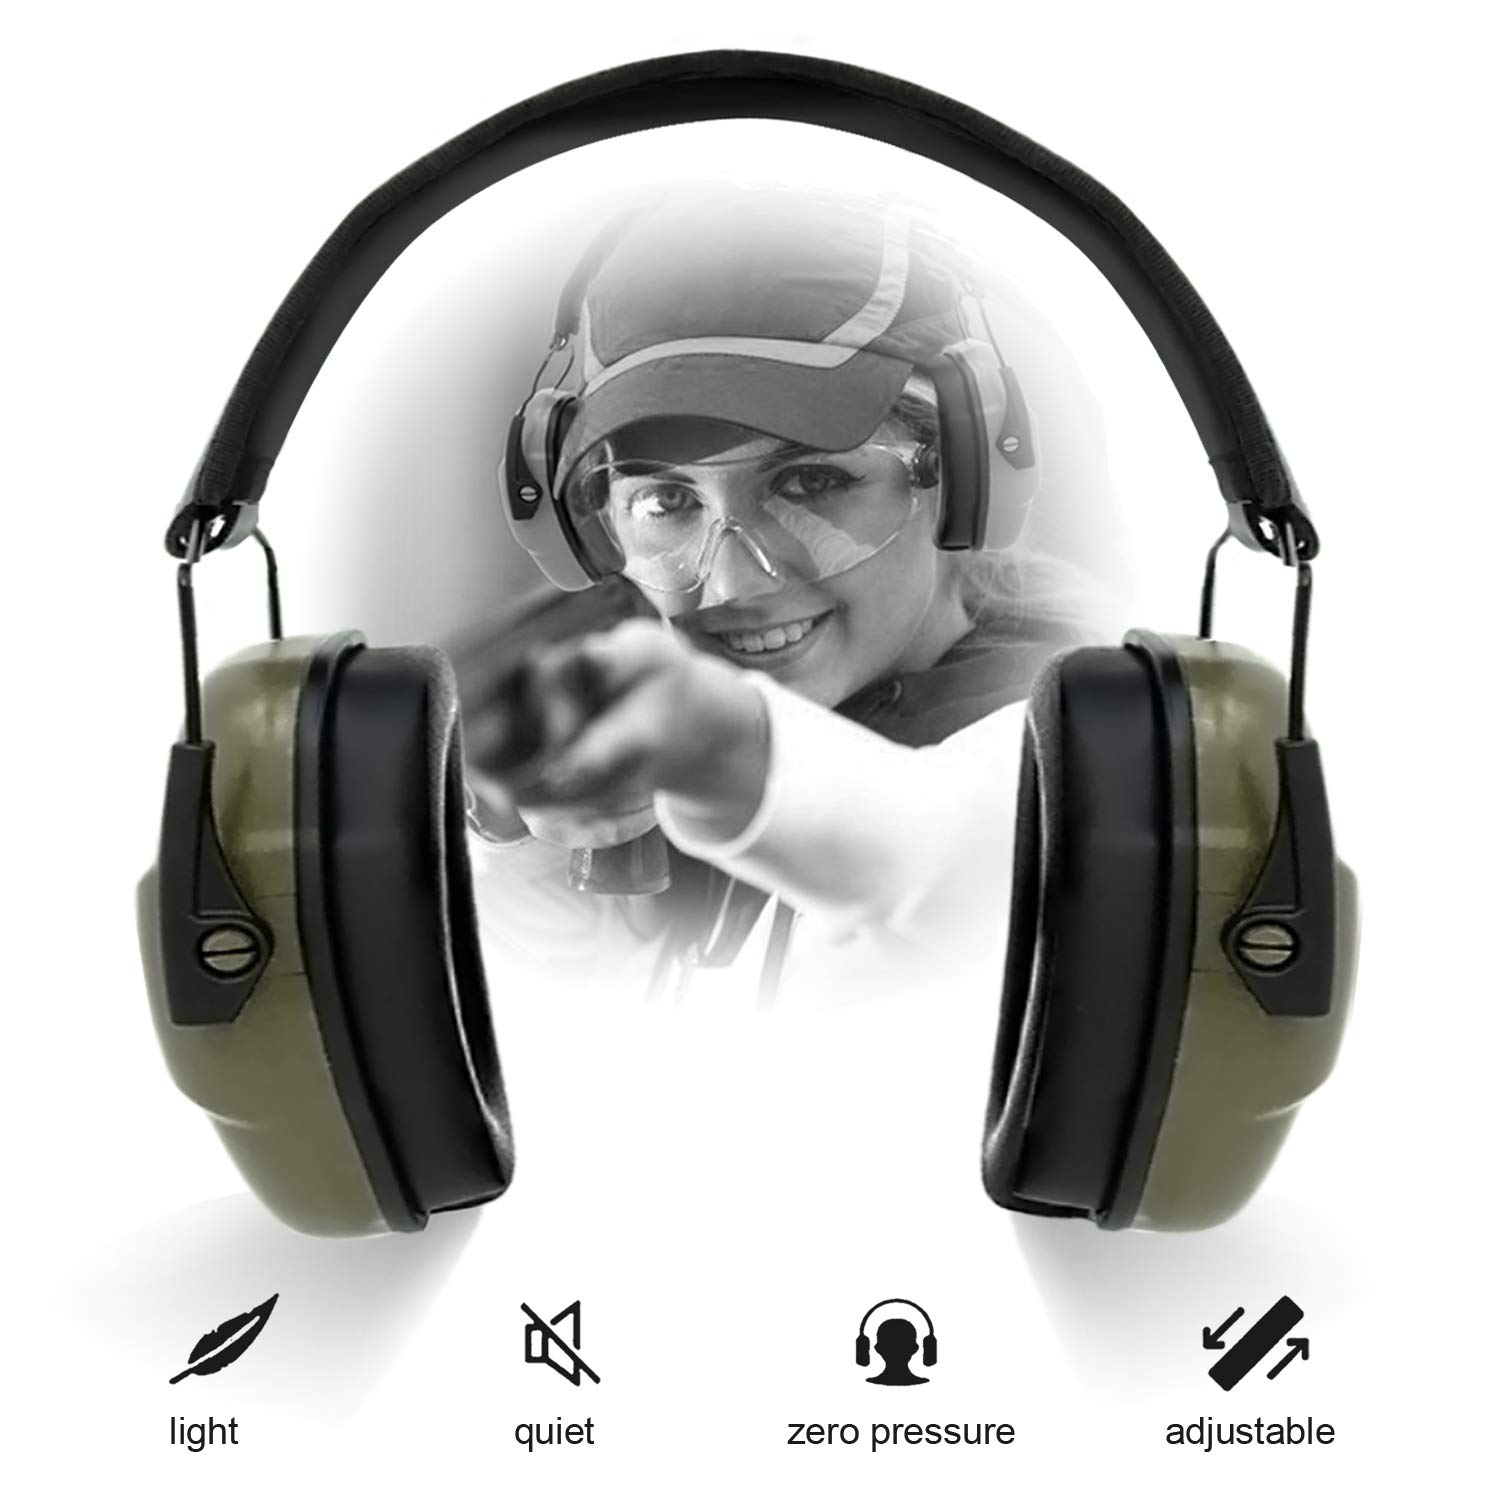 Excellent quality noise reduction headphones that are comfortable.